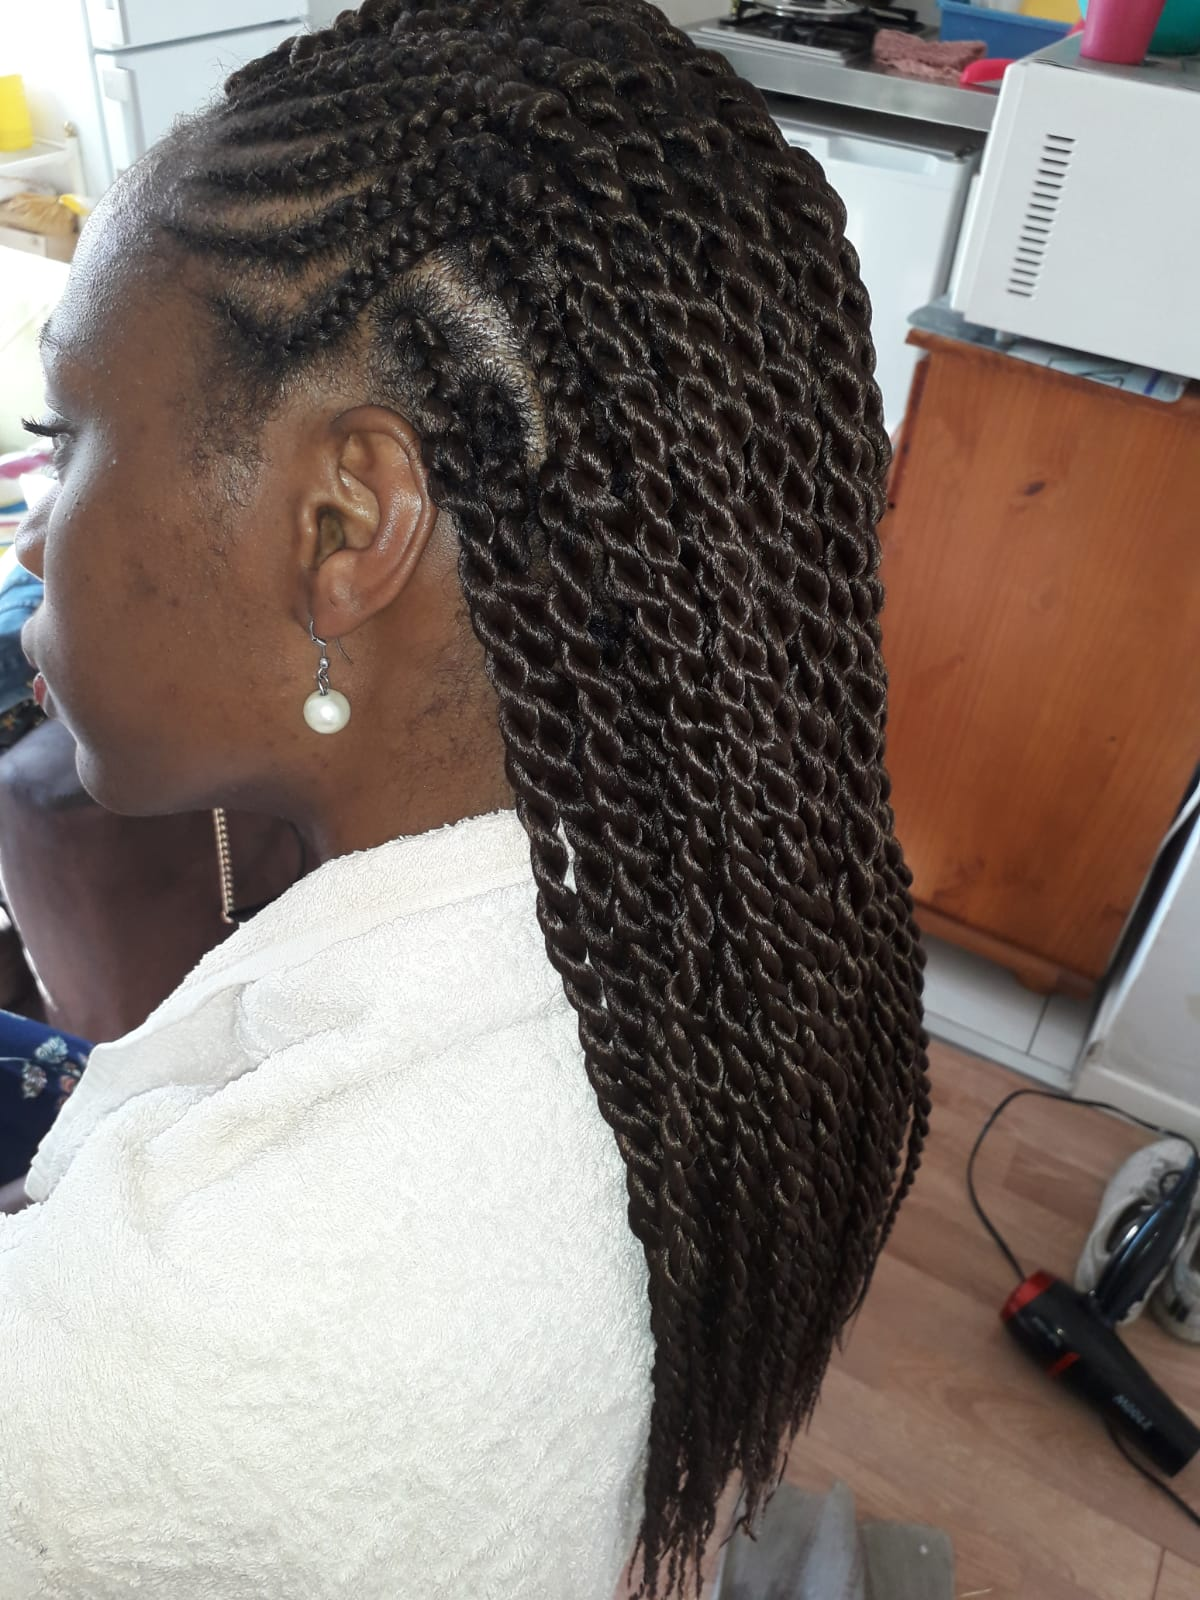 salon de coiffure afro tresse tresses box braids crochet braids vanilles tissages paris 75 77 78 91 92 93 94 95 JFODNJAW